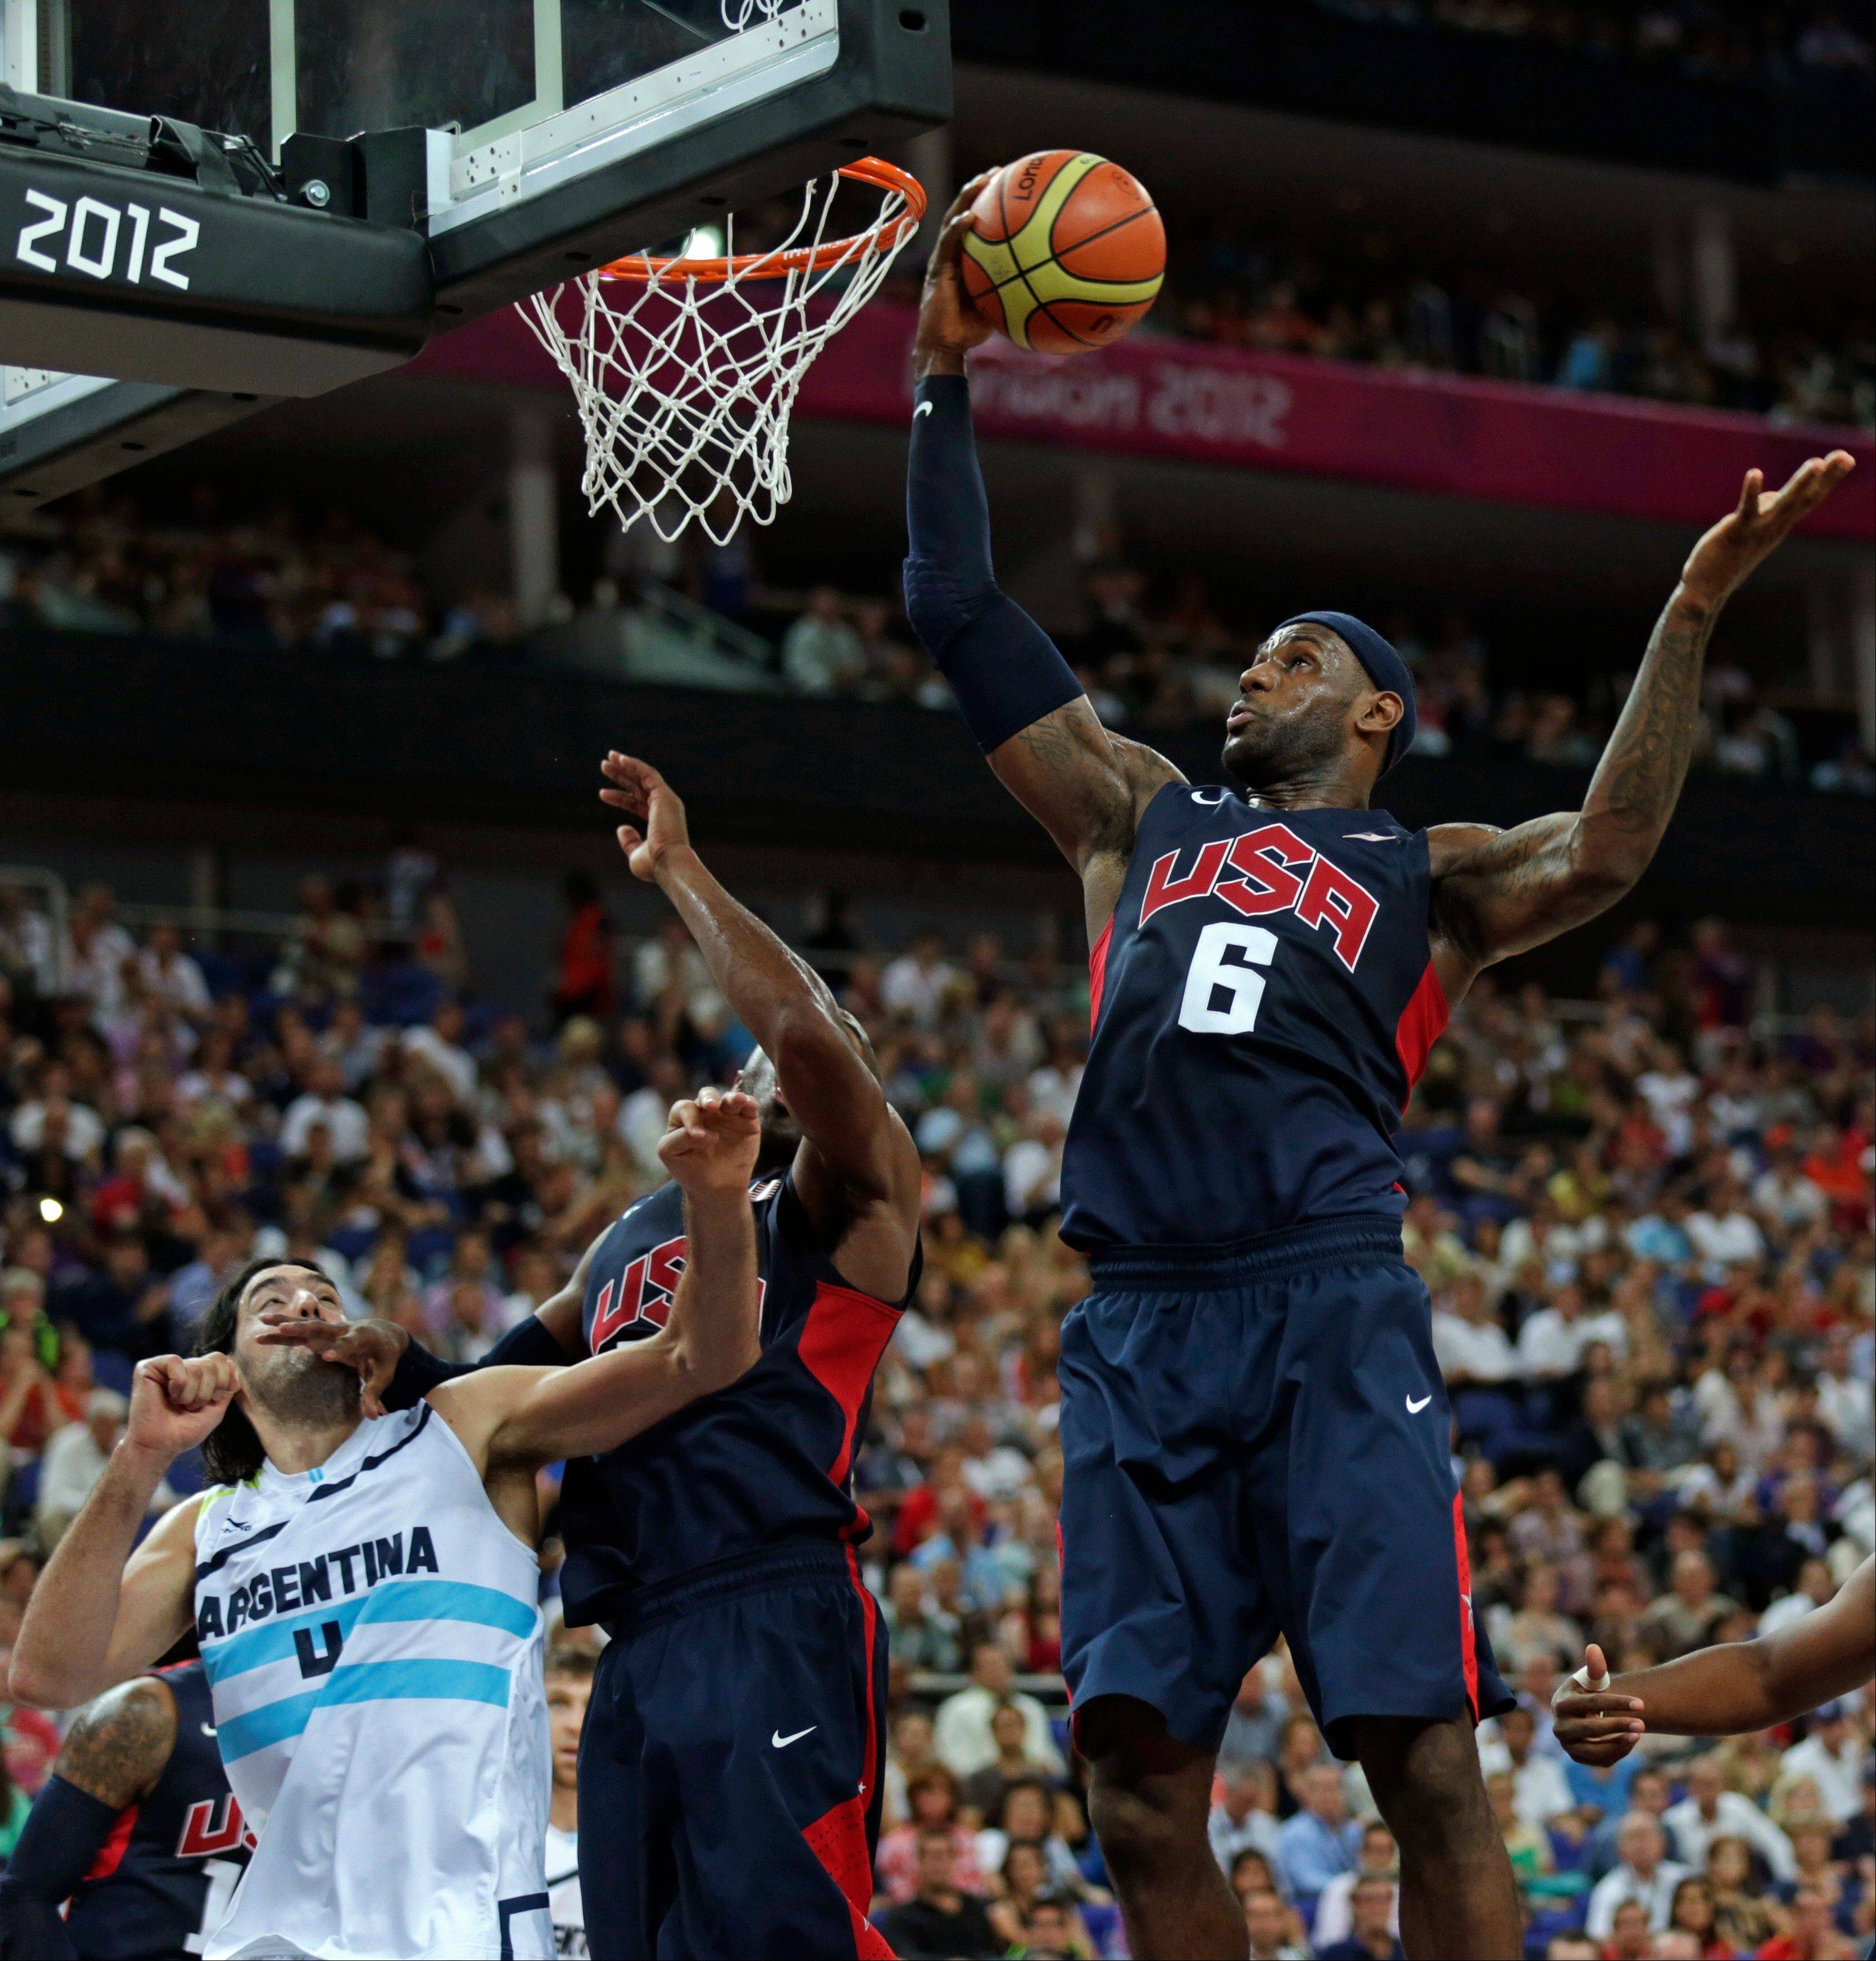 United States forward LeBron James, right, grabs a rebound as teammate Kobe Bryant blocks out Argentina's Luis Scola Friday during the semifinals.